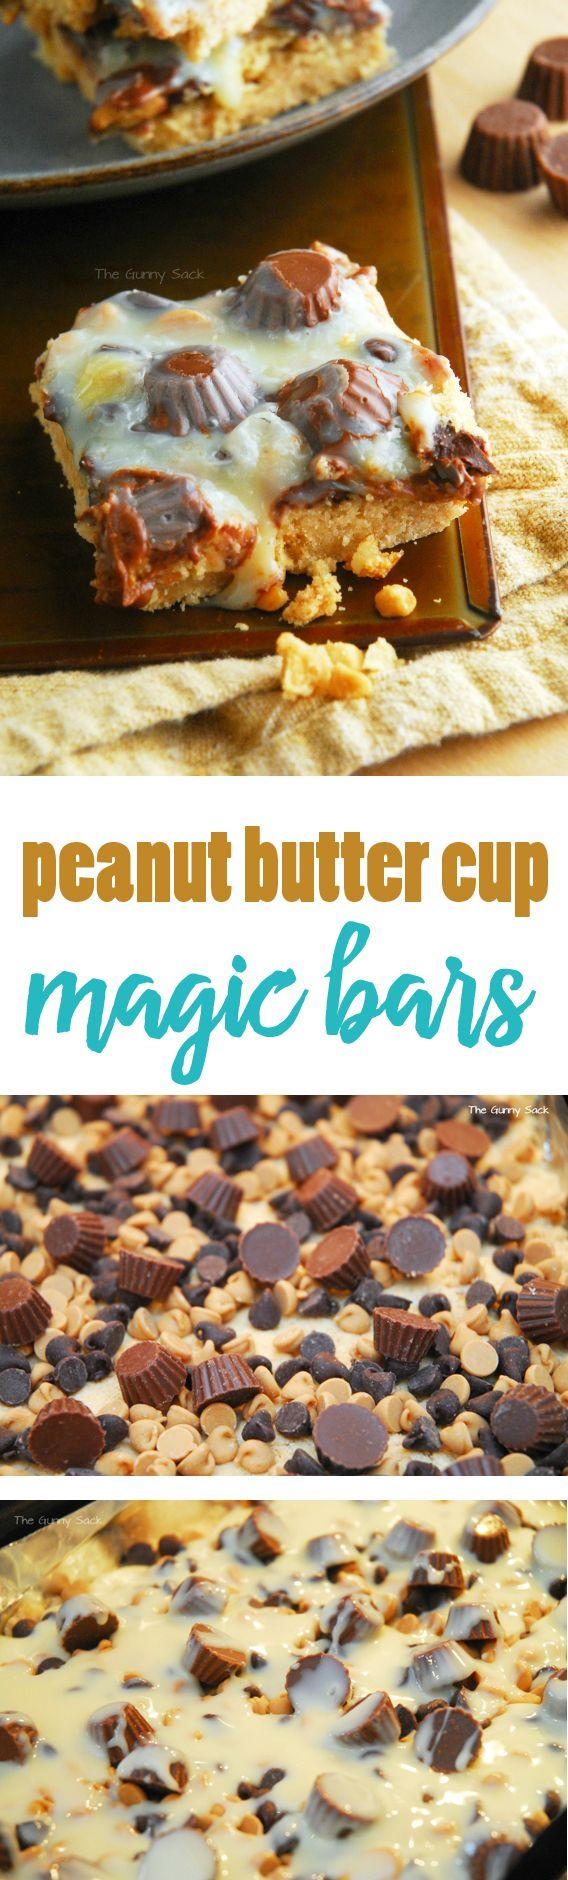 Peanut Butter Cup Magic Bars Recipe | Reese's Peanut Butter Cup Minis are the perfect size for this peanut butter cookie bar recipe. This is another cake mix recipe that is easy to make and tastes delicious!